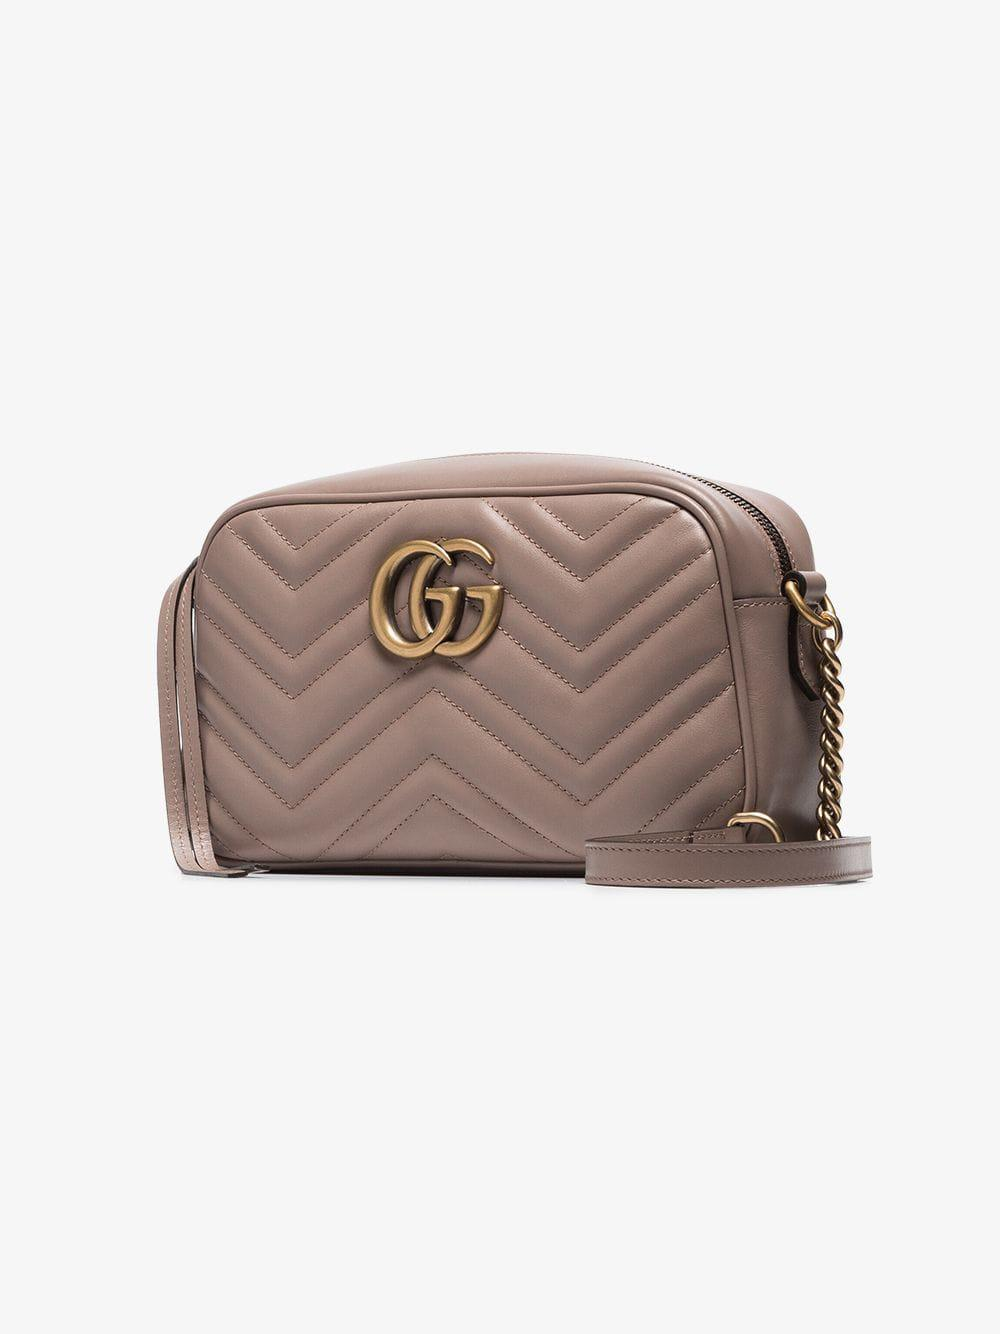 Gucci GG Marmont tote bag, Womens, Nude/Neutrals, Leather - Wheretoget